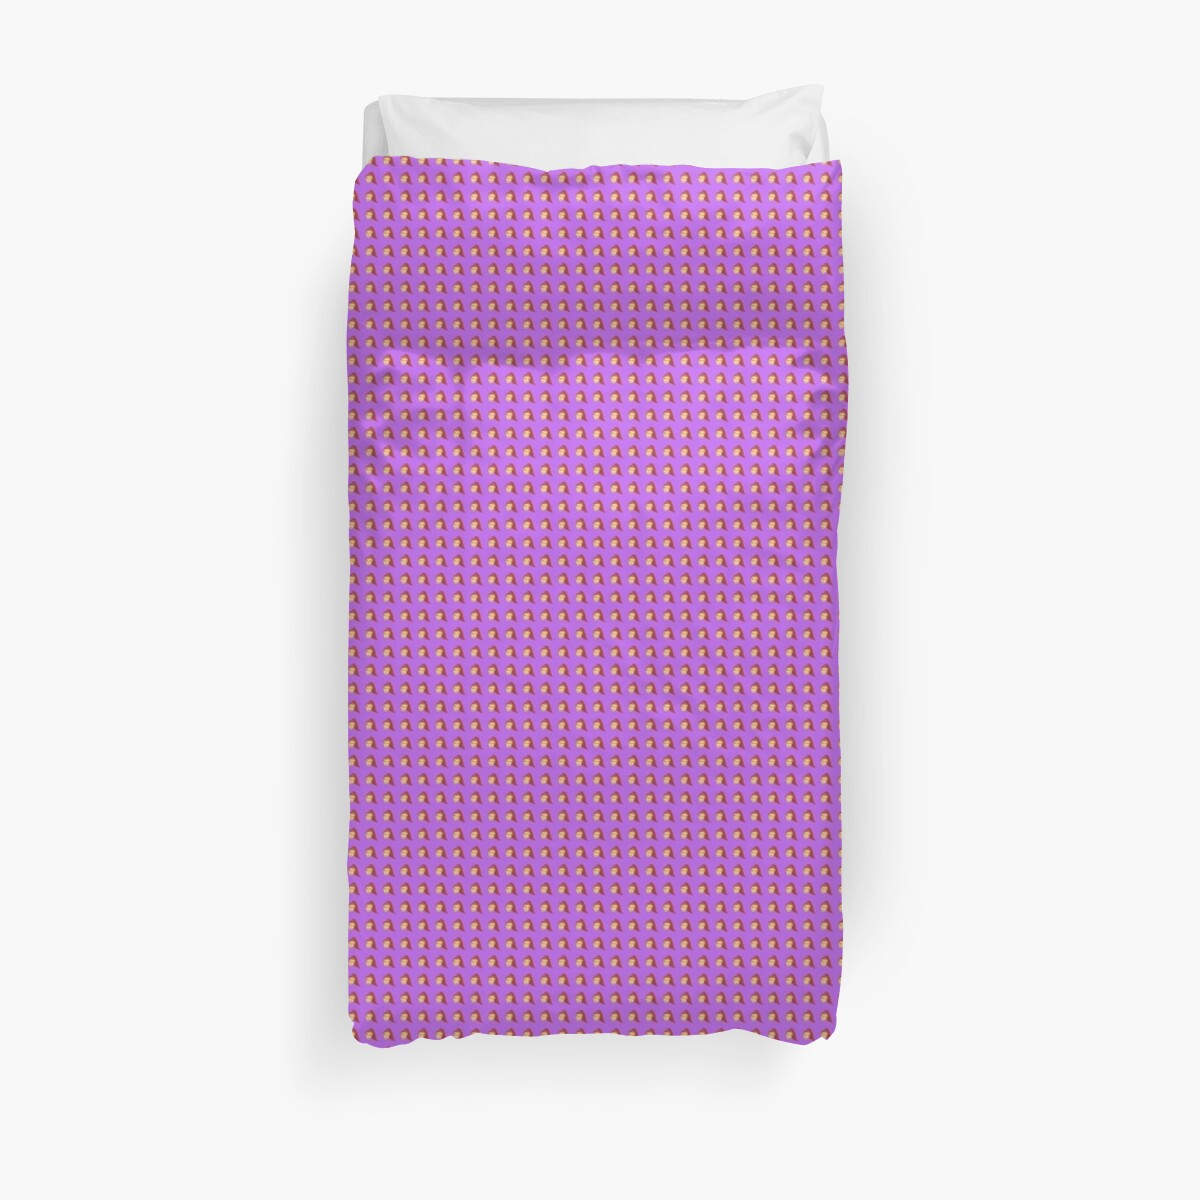 Quot Ariana Grande Quot Duvet Covers By Zoya02 Redbubble